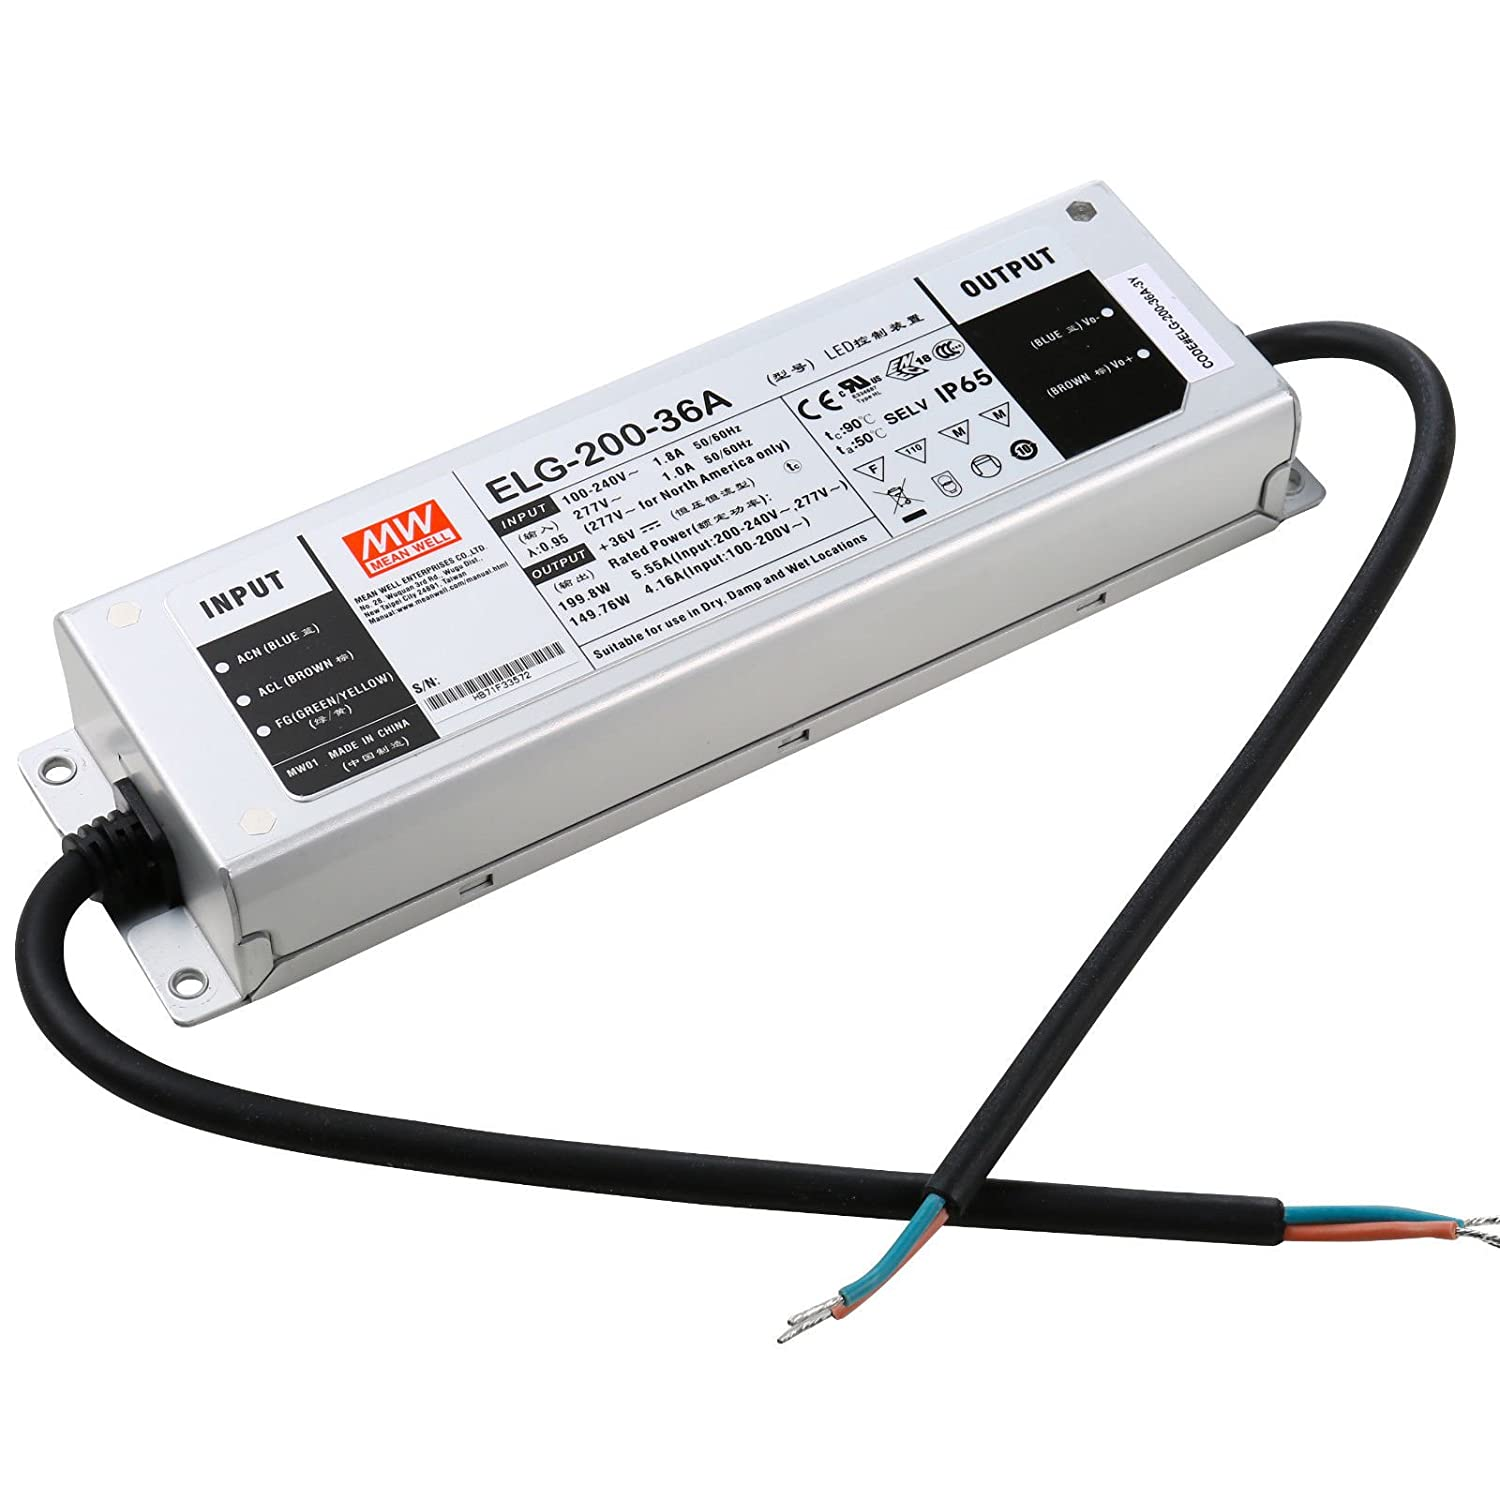 MEAN WELL ELG 200 144200W Constant Voltage Current